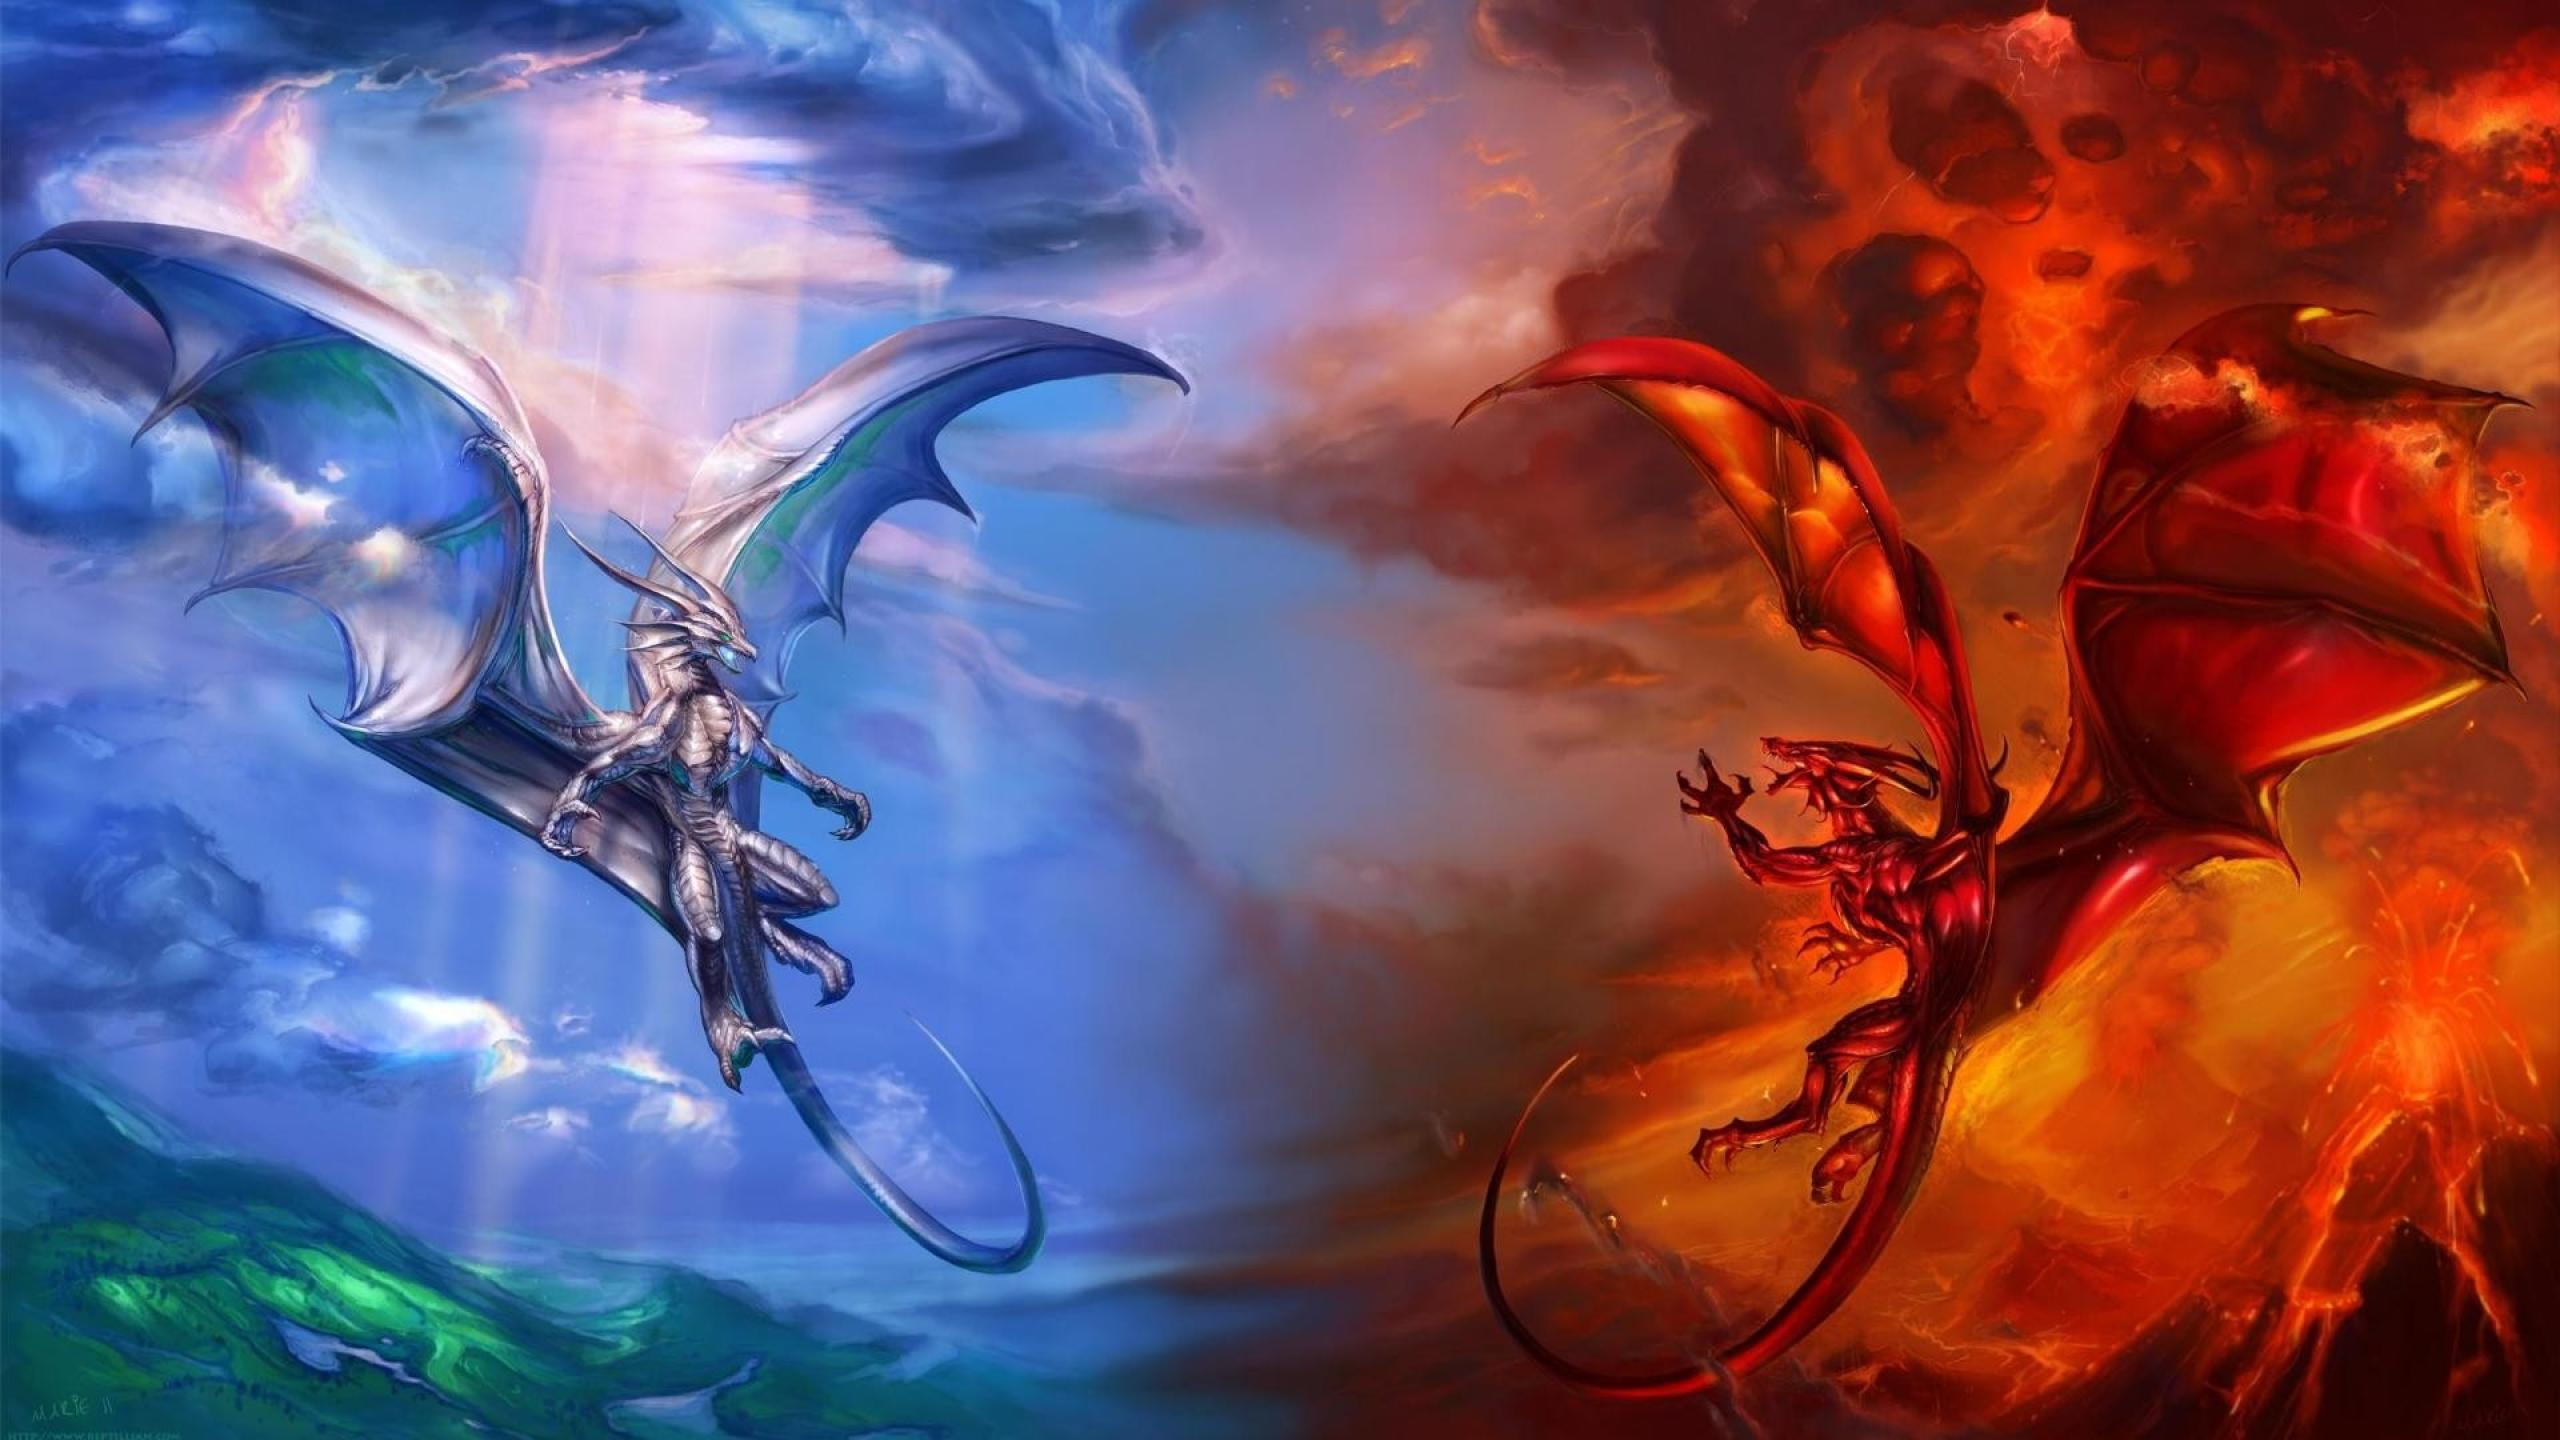 Fire dragon awesome best 2560x1440 wallpaper85517